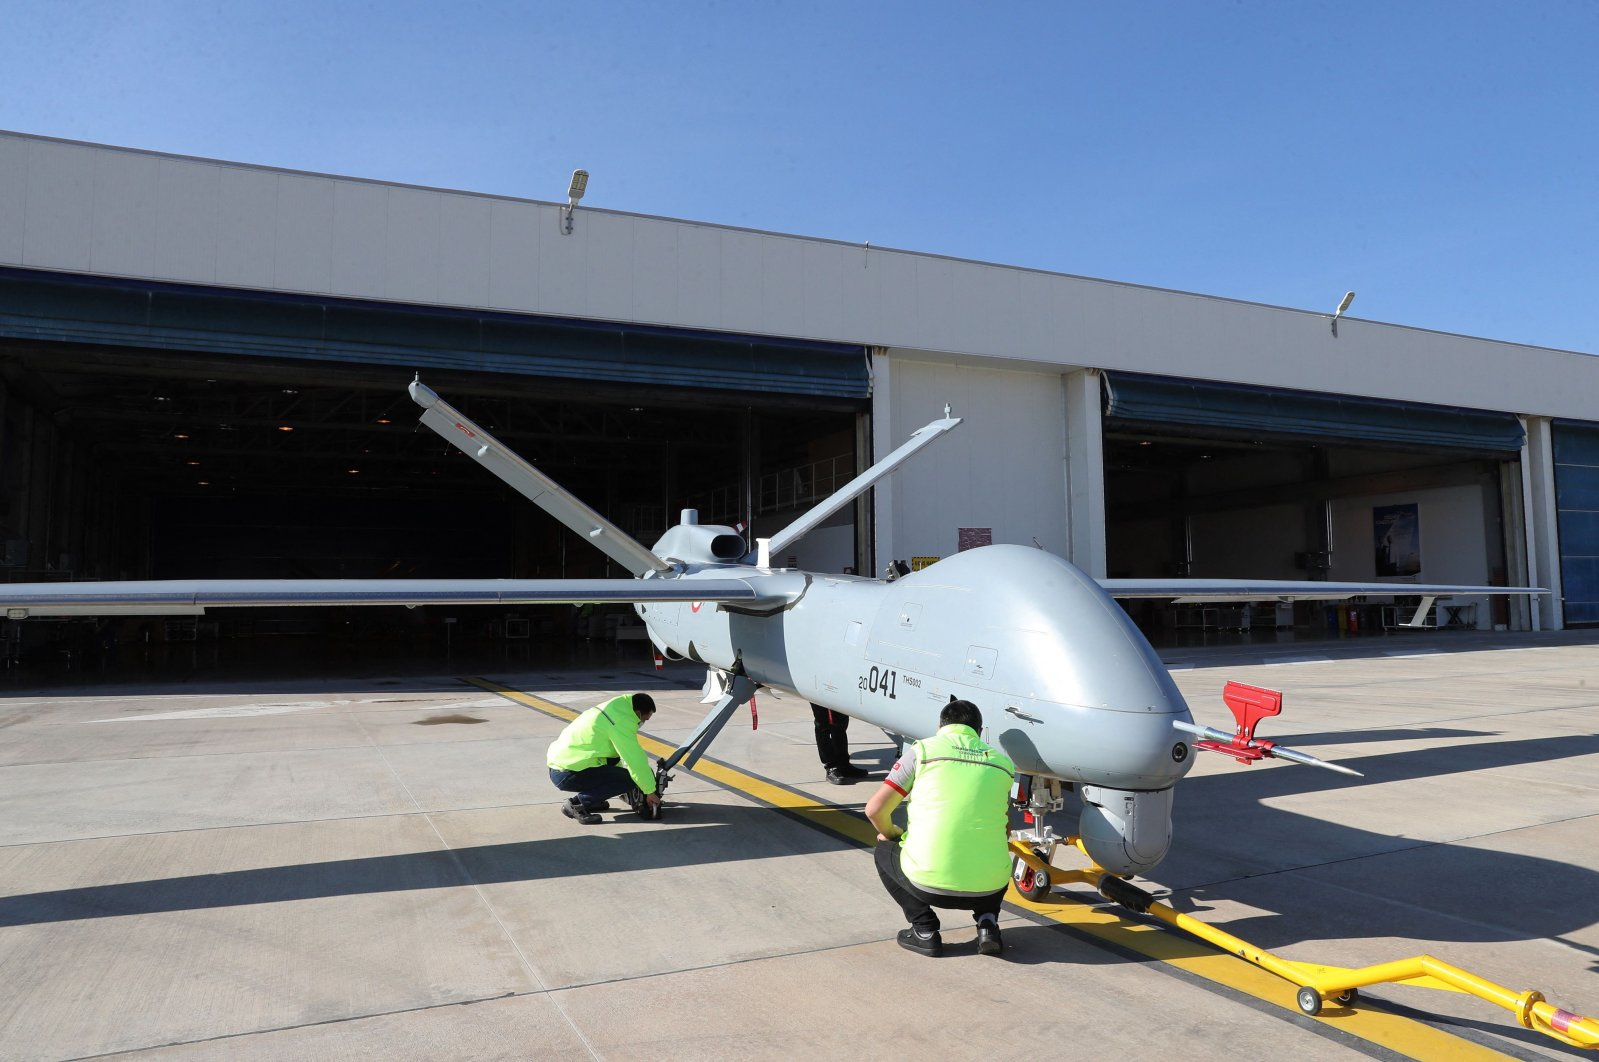 TAI's Anka drone is checked by employees in Ankara, Turkey, March 5, 2021. (AFP Photo)